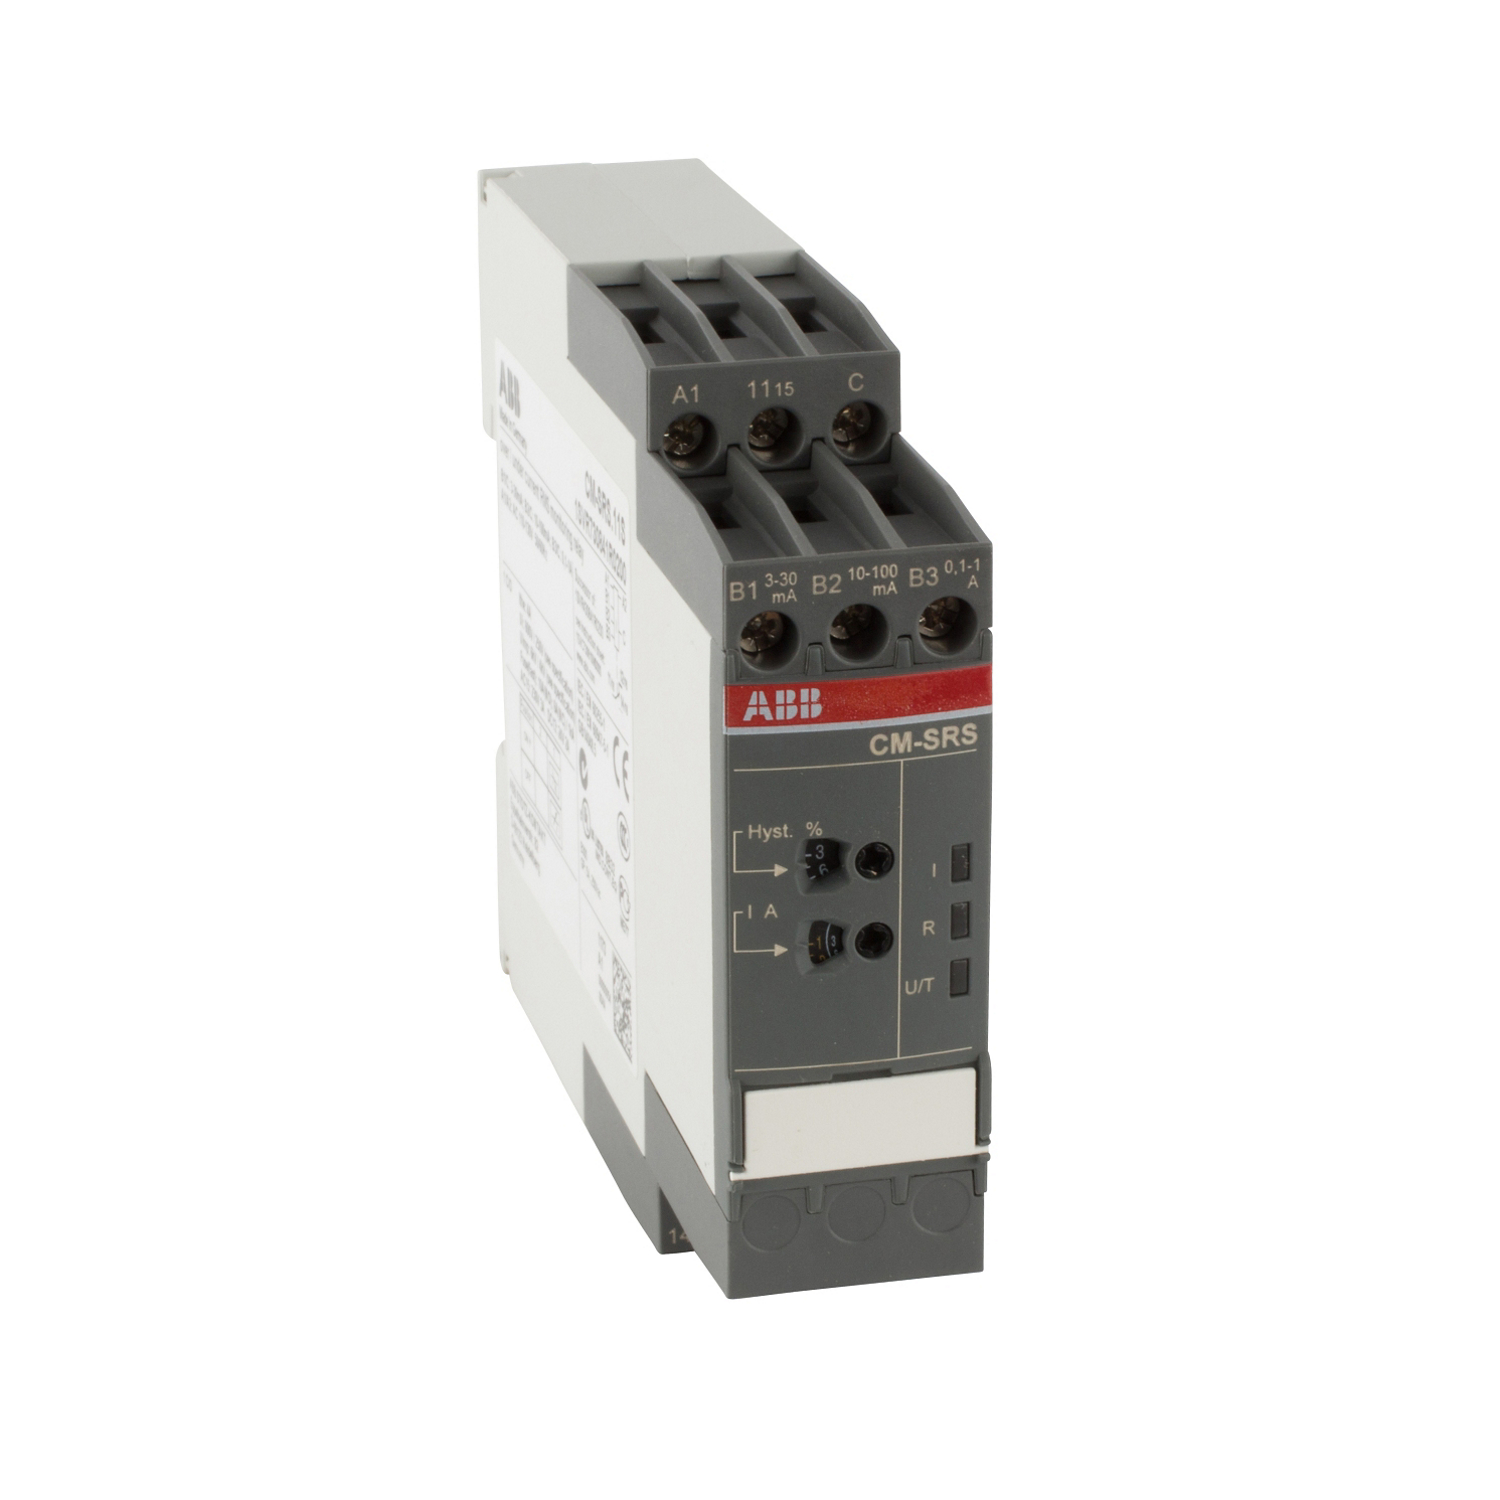 ABB 1SVR730841R0200 Current Monitoring Relay